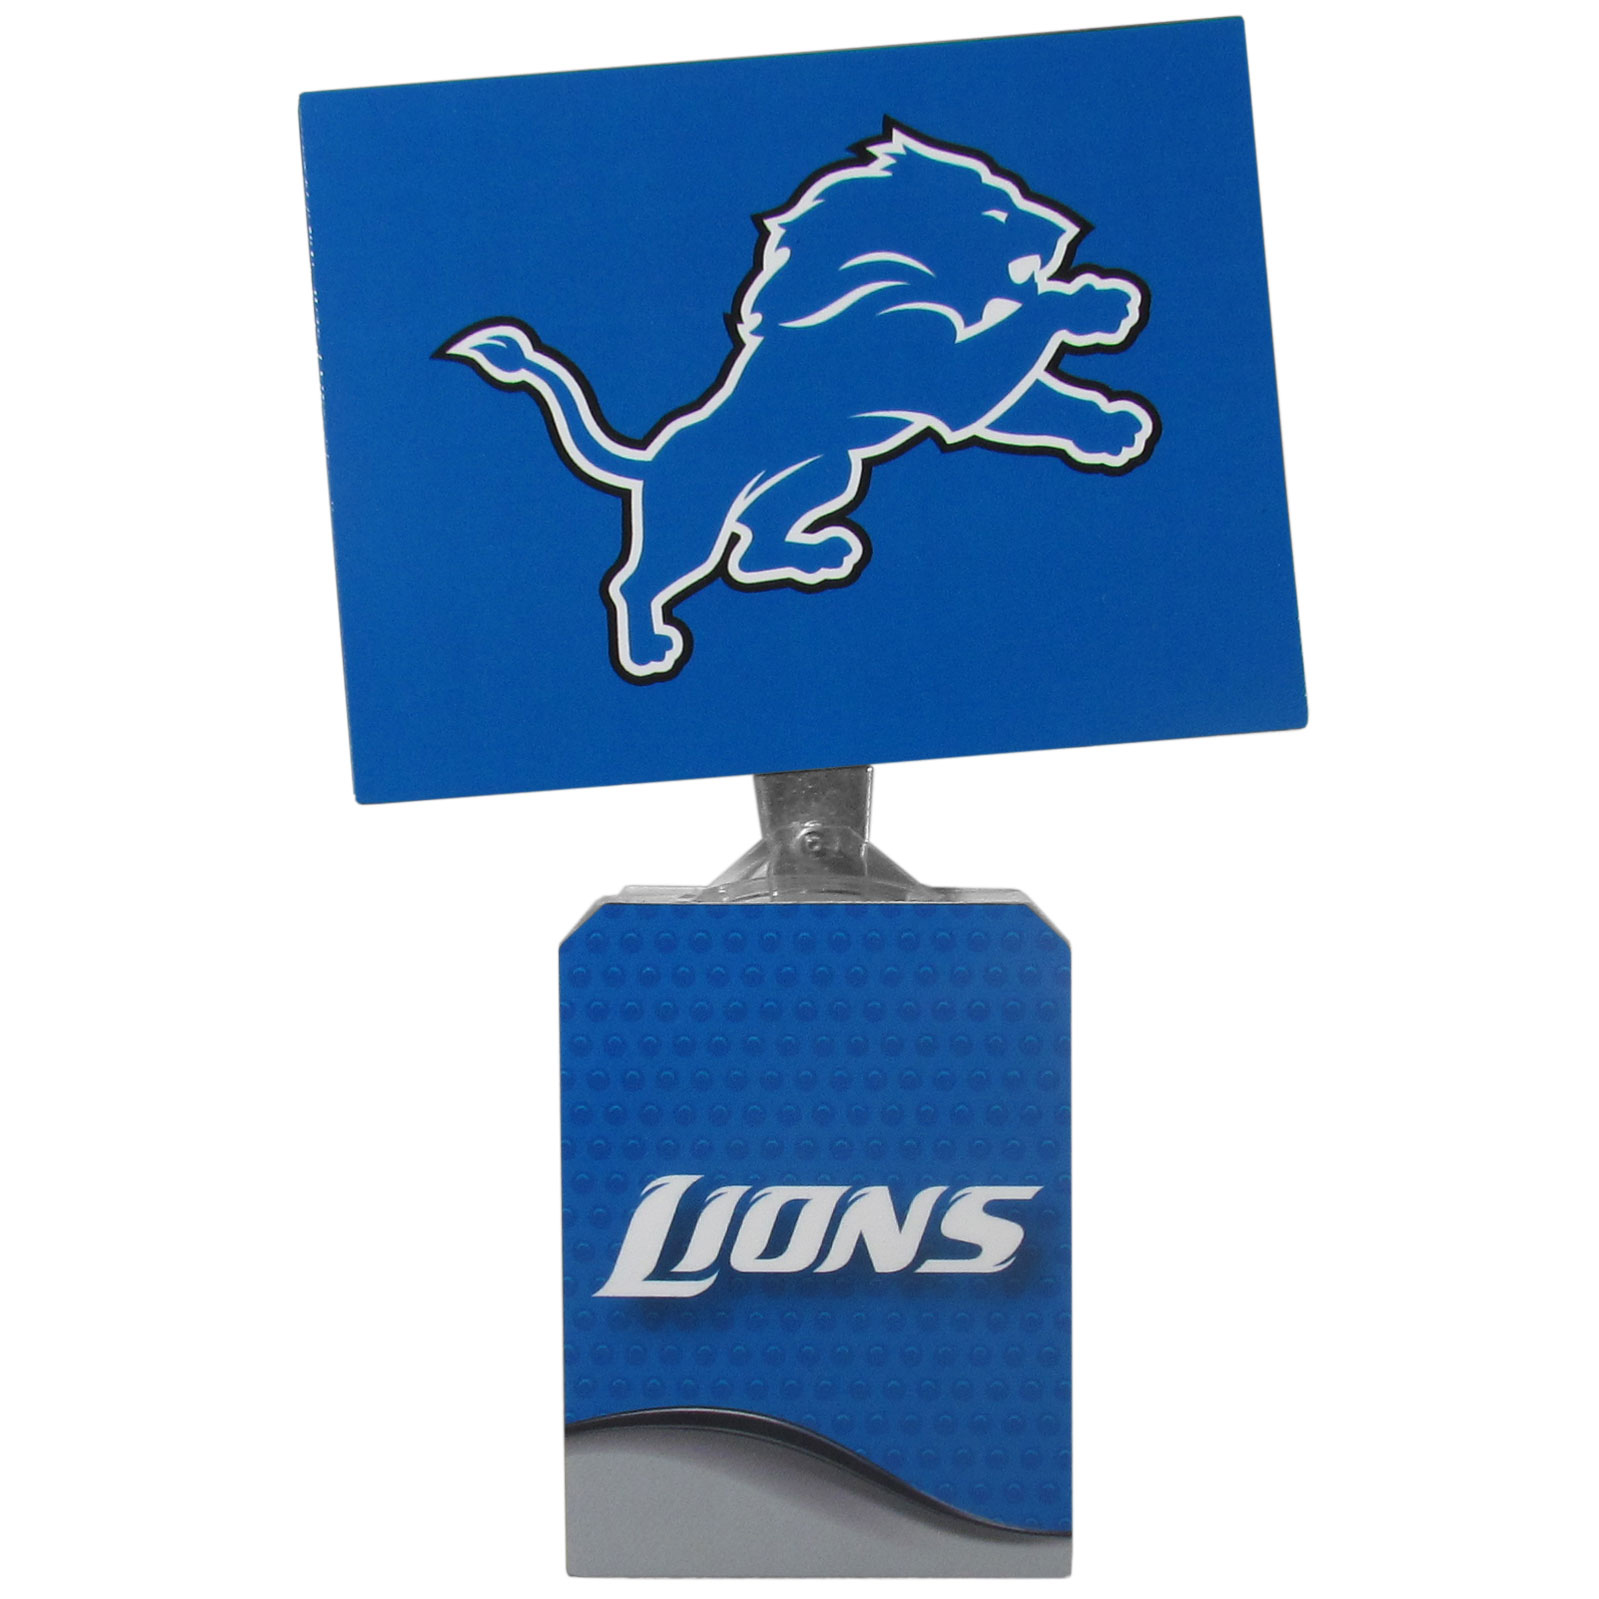 Detroit Lions Solar Flags - Get pumped up on the way to game with Siskiyou's Chicago Bears Detroit Lions Solar Flag that mounts to your dashboard or window. The in-motion solar flag also doubles as decoration for your tailgate or homegate! The base of the flag is 3 inches tall and the flag is 4 inches making the entire in-motion solar flag stand at 7 inches tall. Keep your spirit moving with your favorite team's Solar Flag.